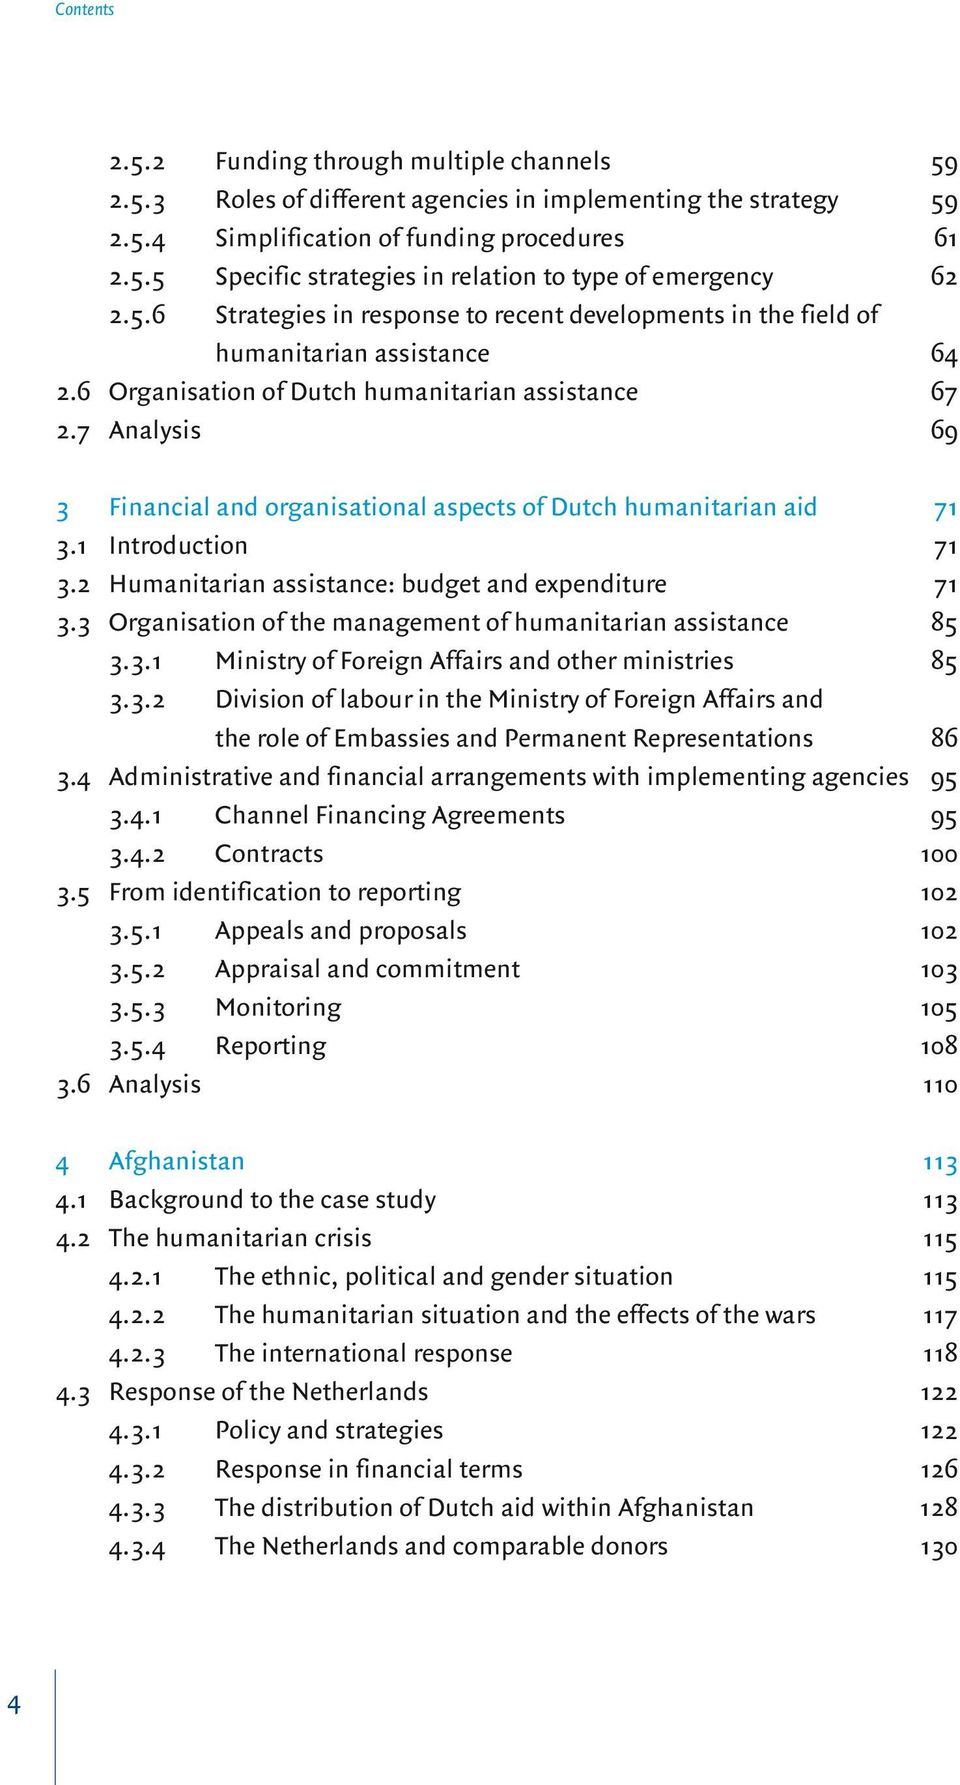 7 Analysis 69 3 Financial and organisational aspects of Dutch humanitarian aid 71 3.1 Introduction 71 3.2 Humanitarian assistance: budget and expenditure 71 3.